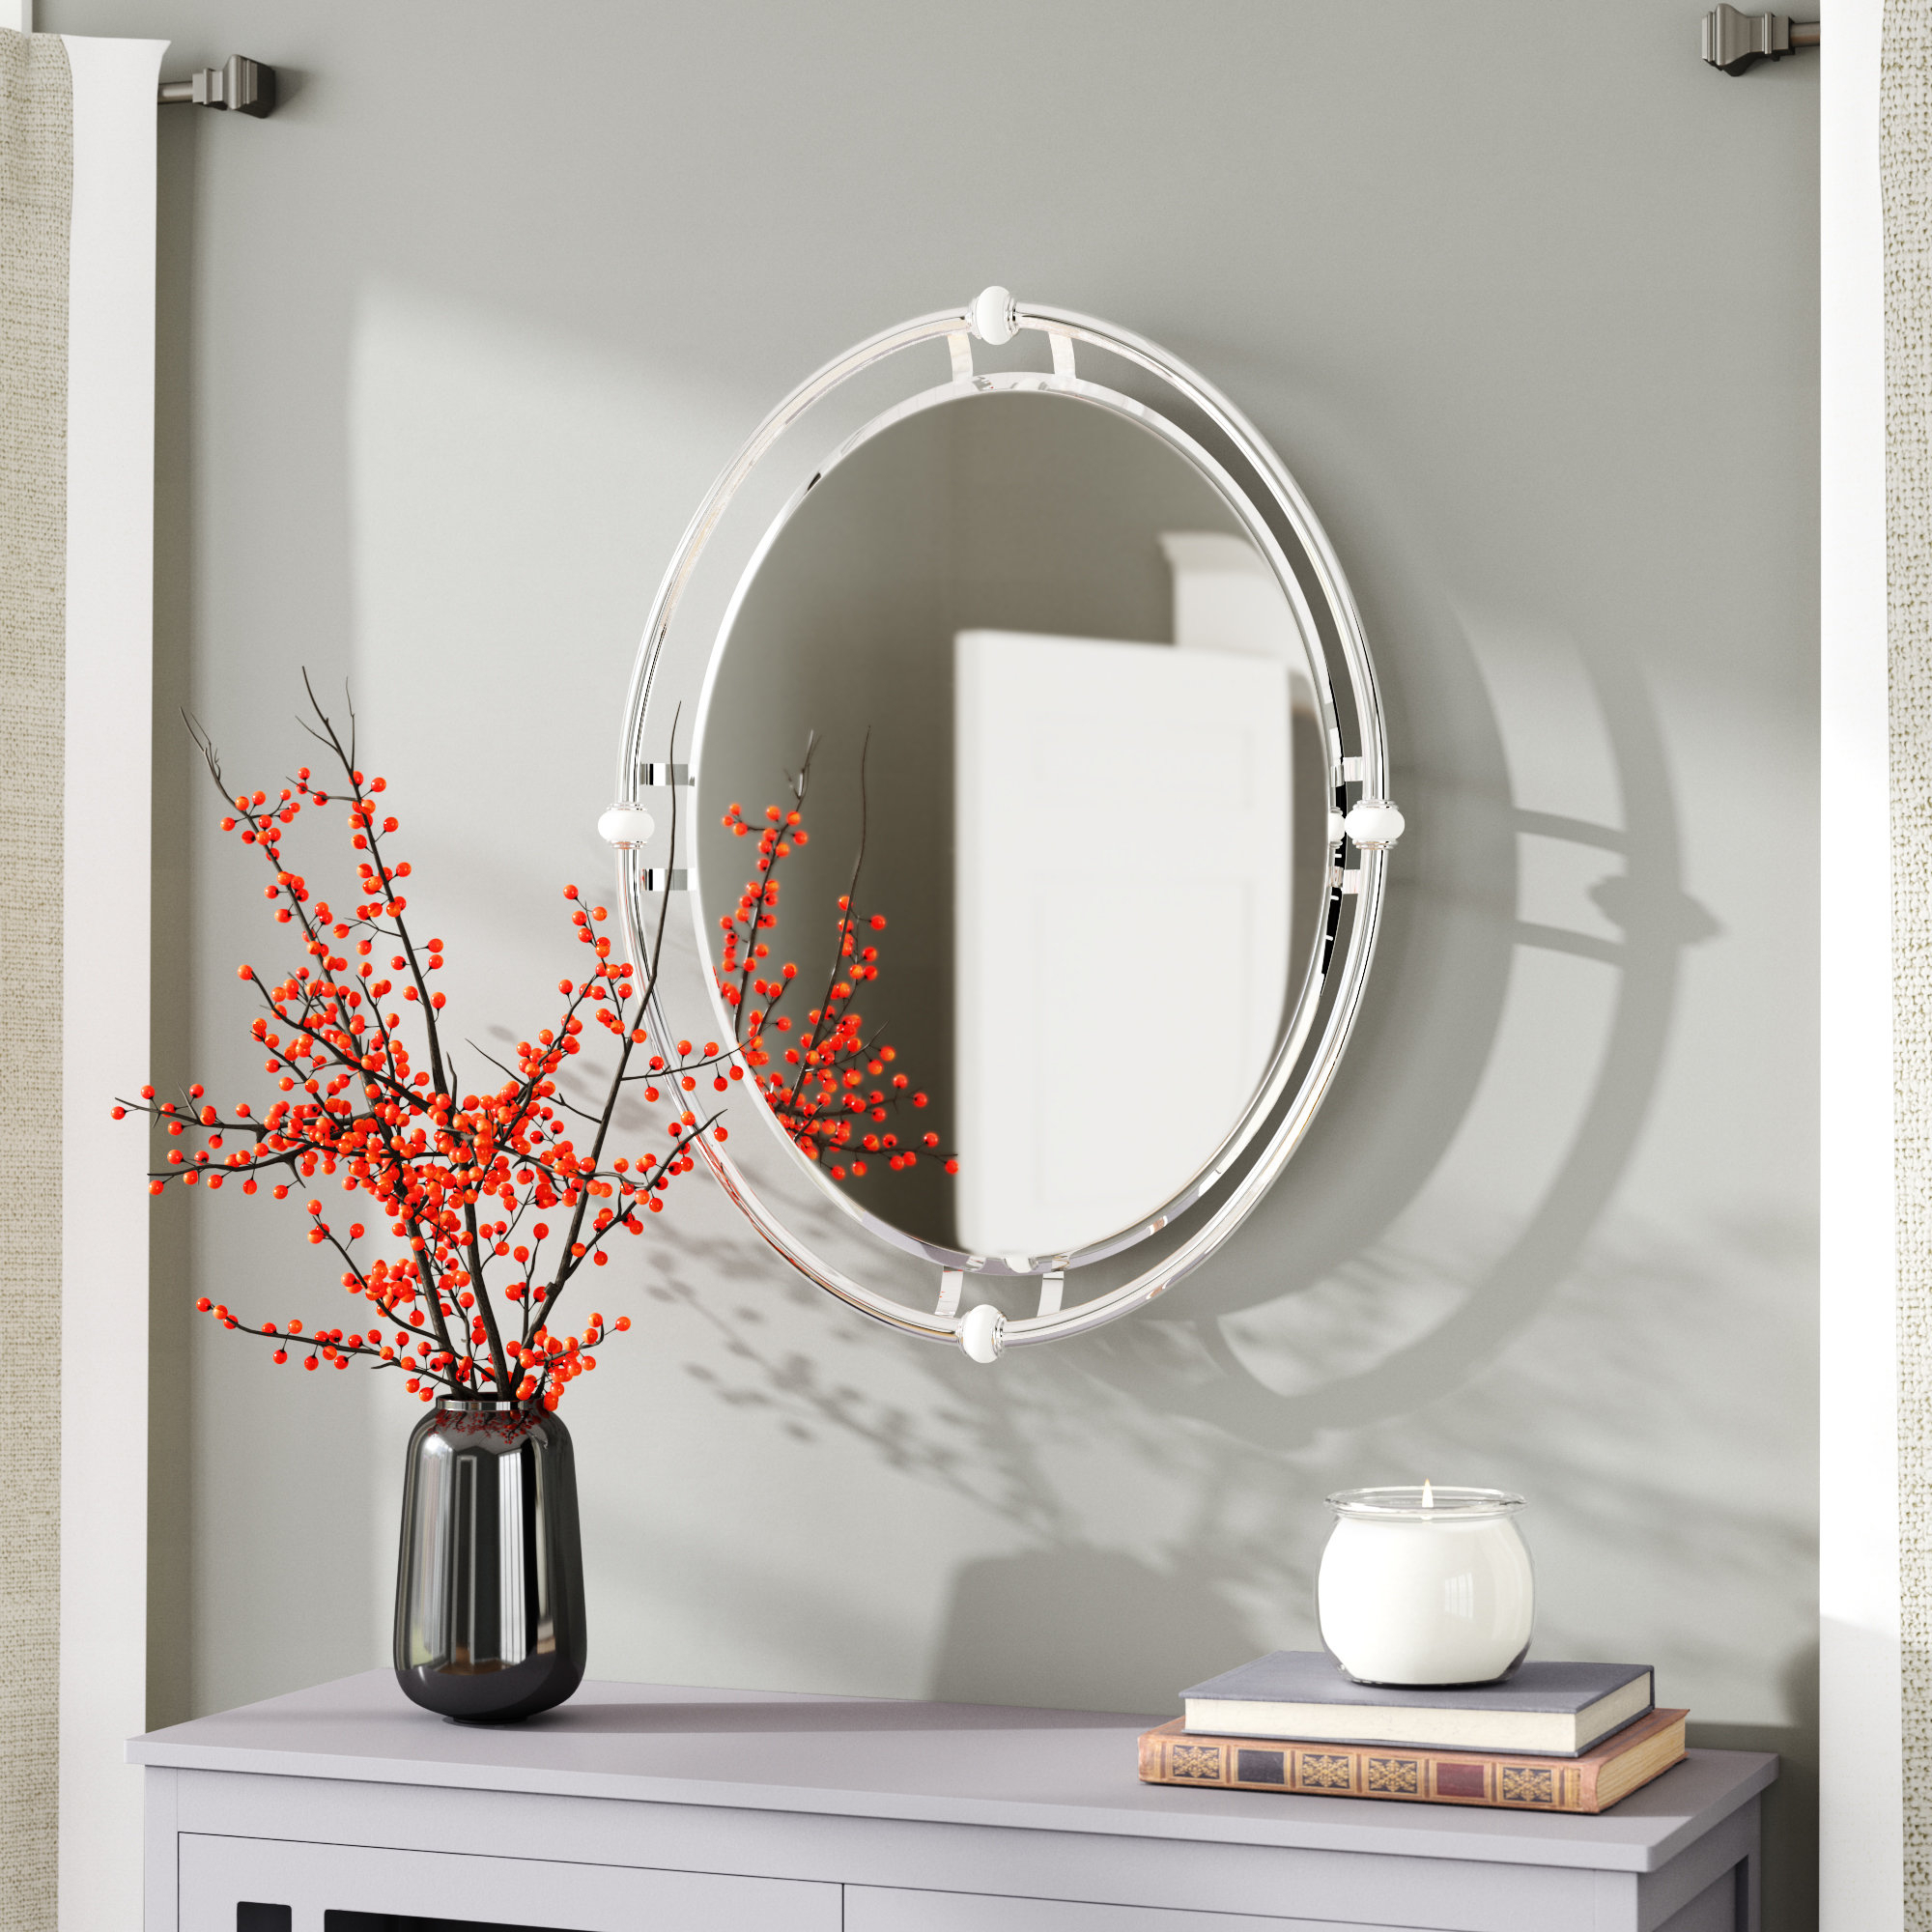 Carylon Oval Modern & Contemporary Beveled Bathroom / Vanity Mirror Regarding 2020 Thornbury Oval Bevel Frameless Wall Mirrors (View 1 of 20)